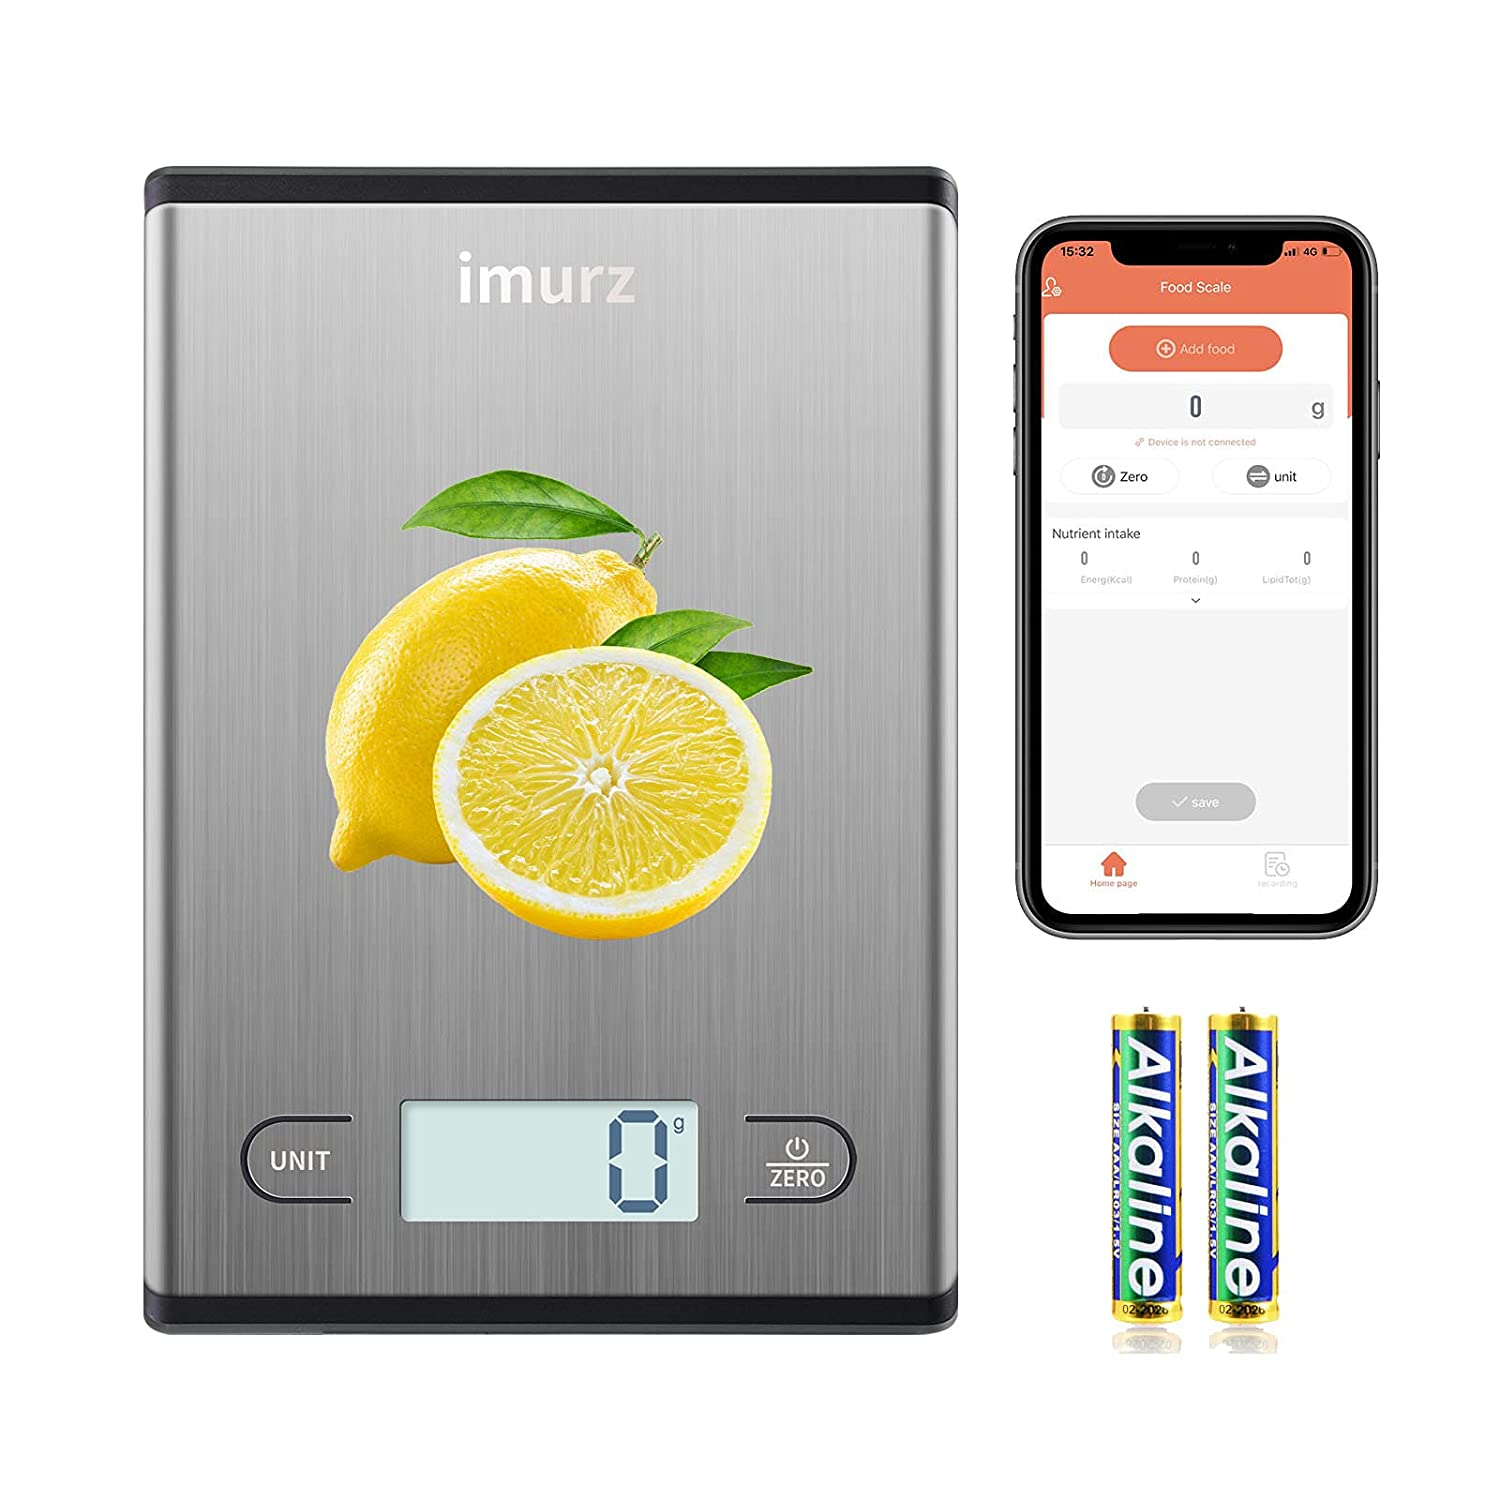 Kitchen Food Scale with Smart Nutritional Data&Calculator, Kitchen Digital Scale Weight Grams and Oz for Weight Loss,Calorie Counter,Baking,Cooking and Meal Prep(Includes Batteries&App)